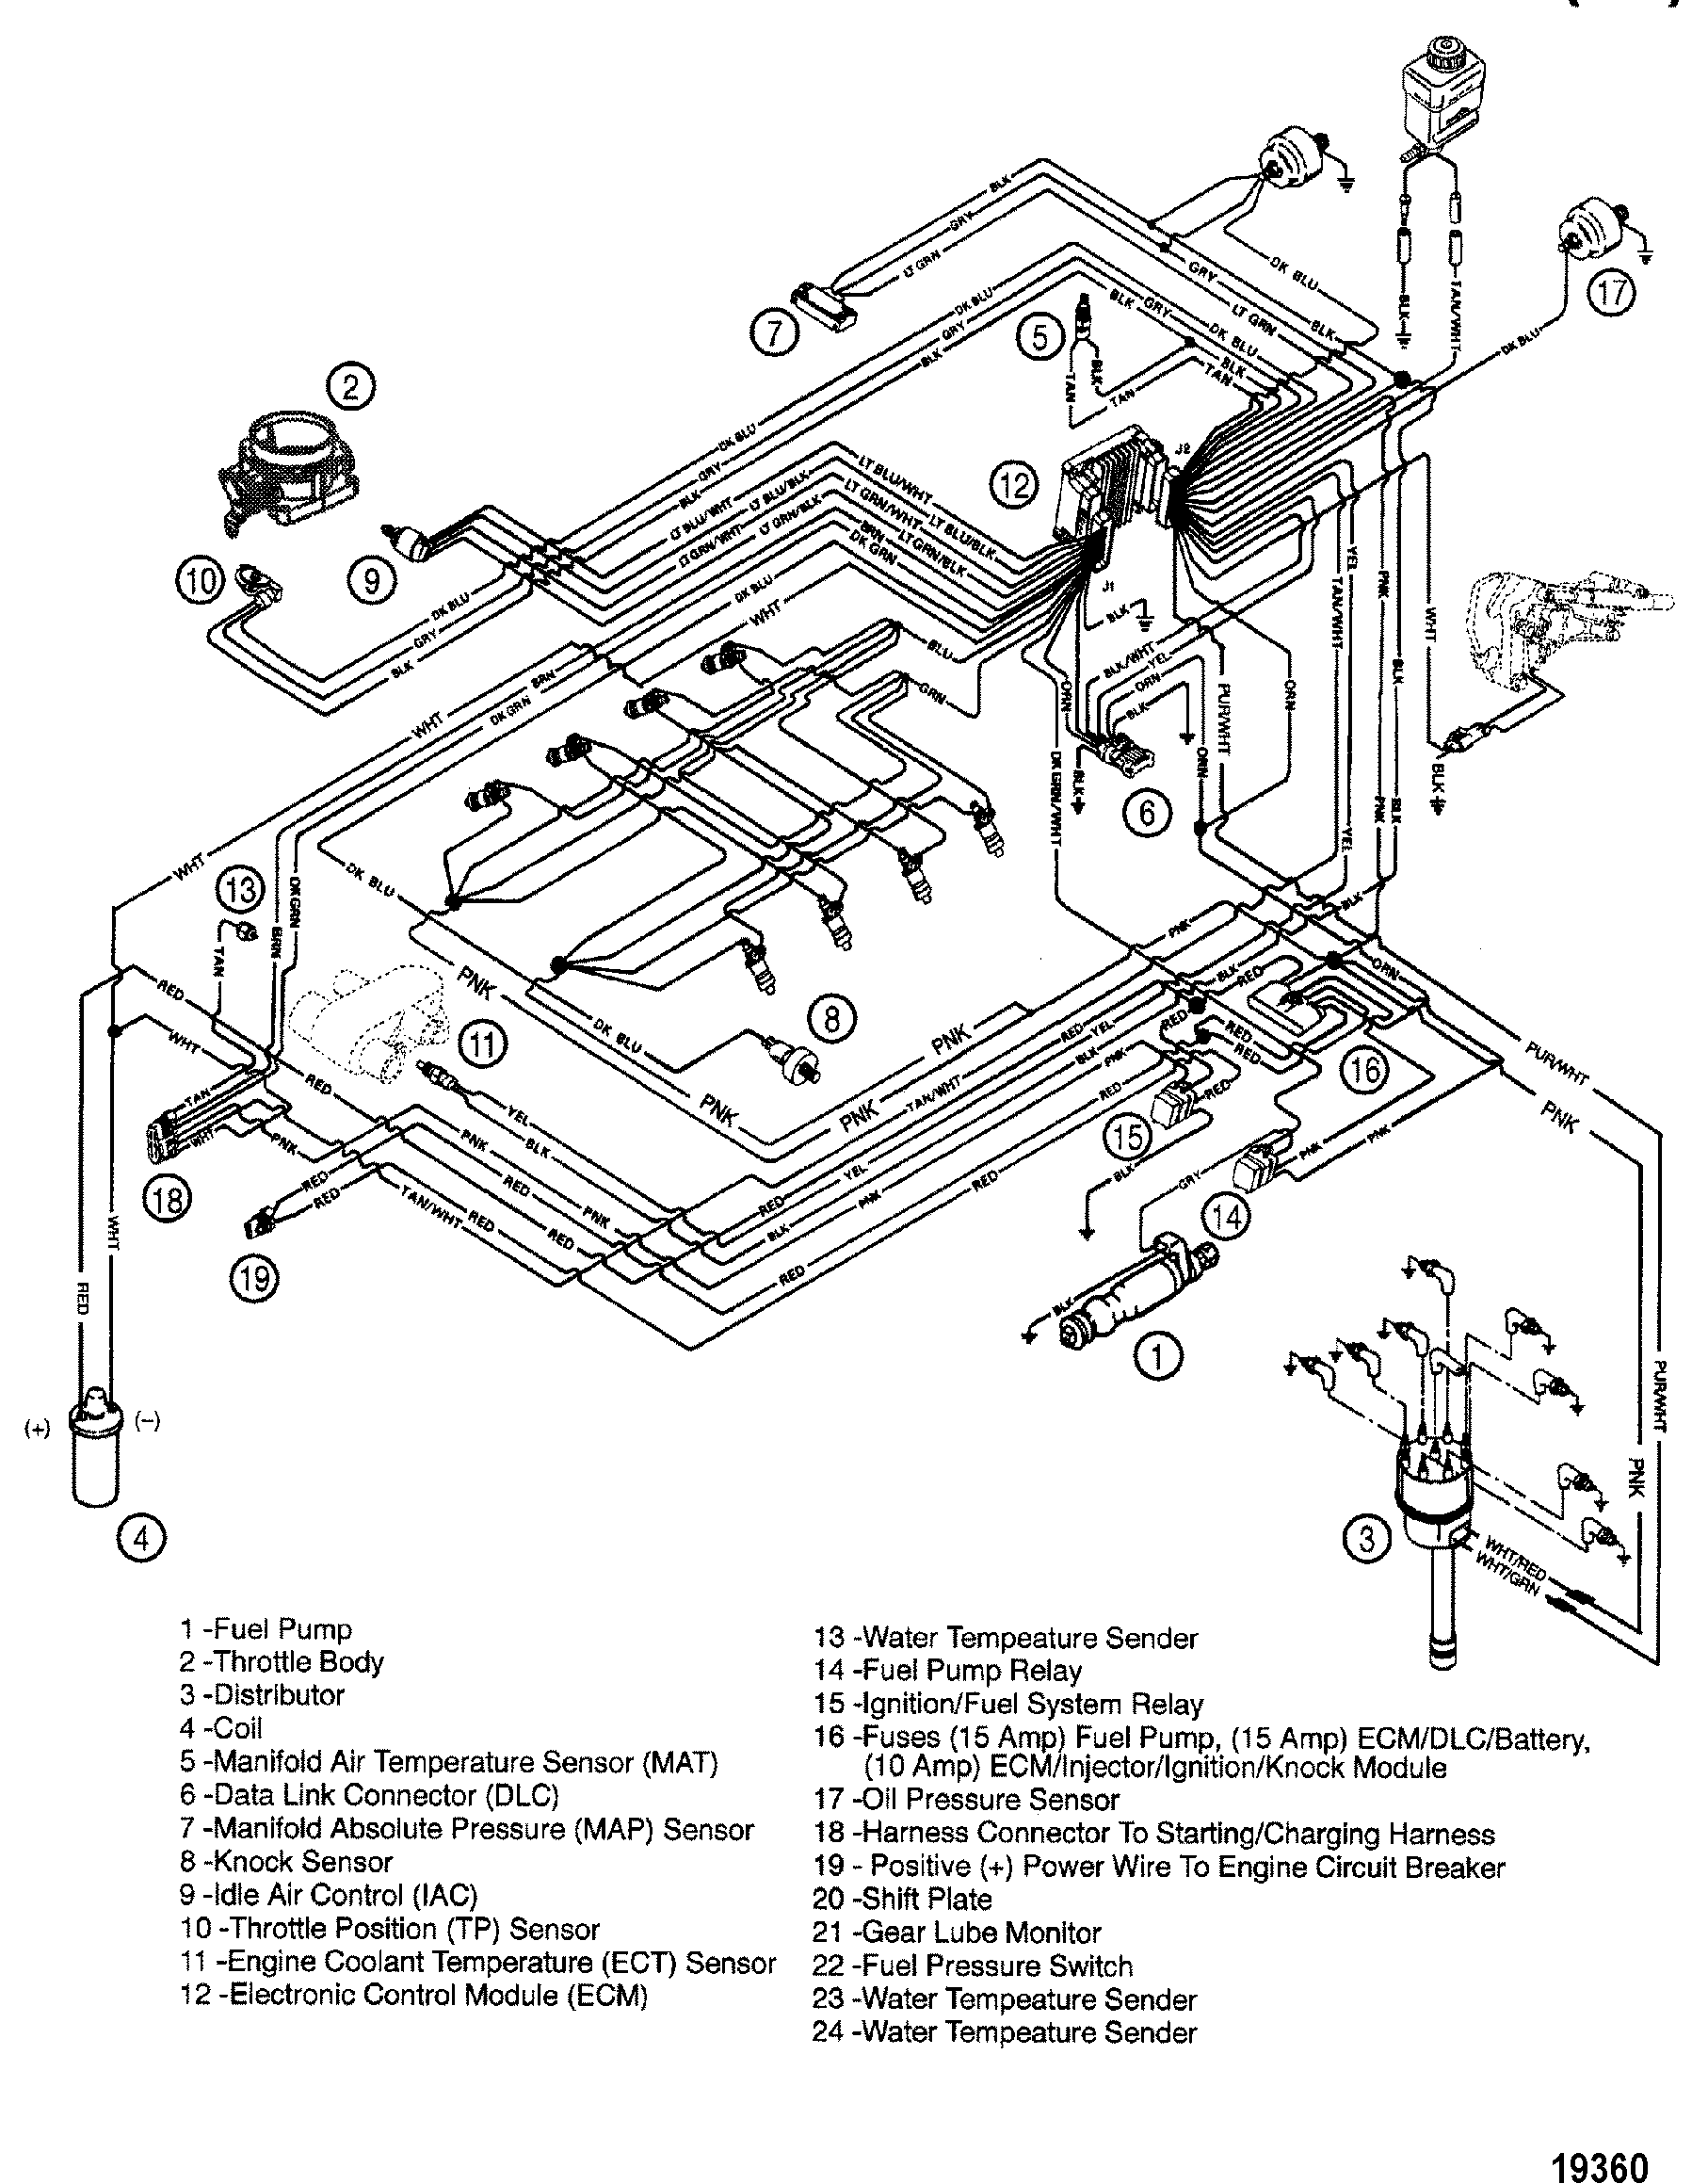 wiring diagram fuel pump on 4 3lx mercruiser 6fcdmtq fotoshd store Polaris Trailblazer 250 Manual mercruiser fuel pump wiring diagram wiring diagram rh 36 sbaphotography nl